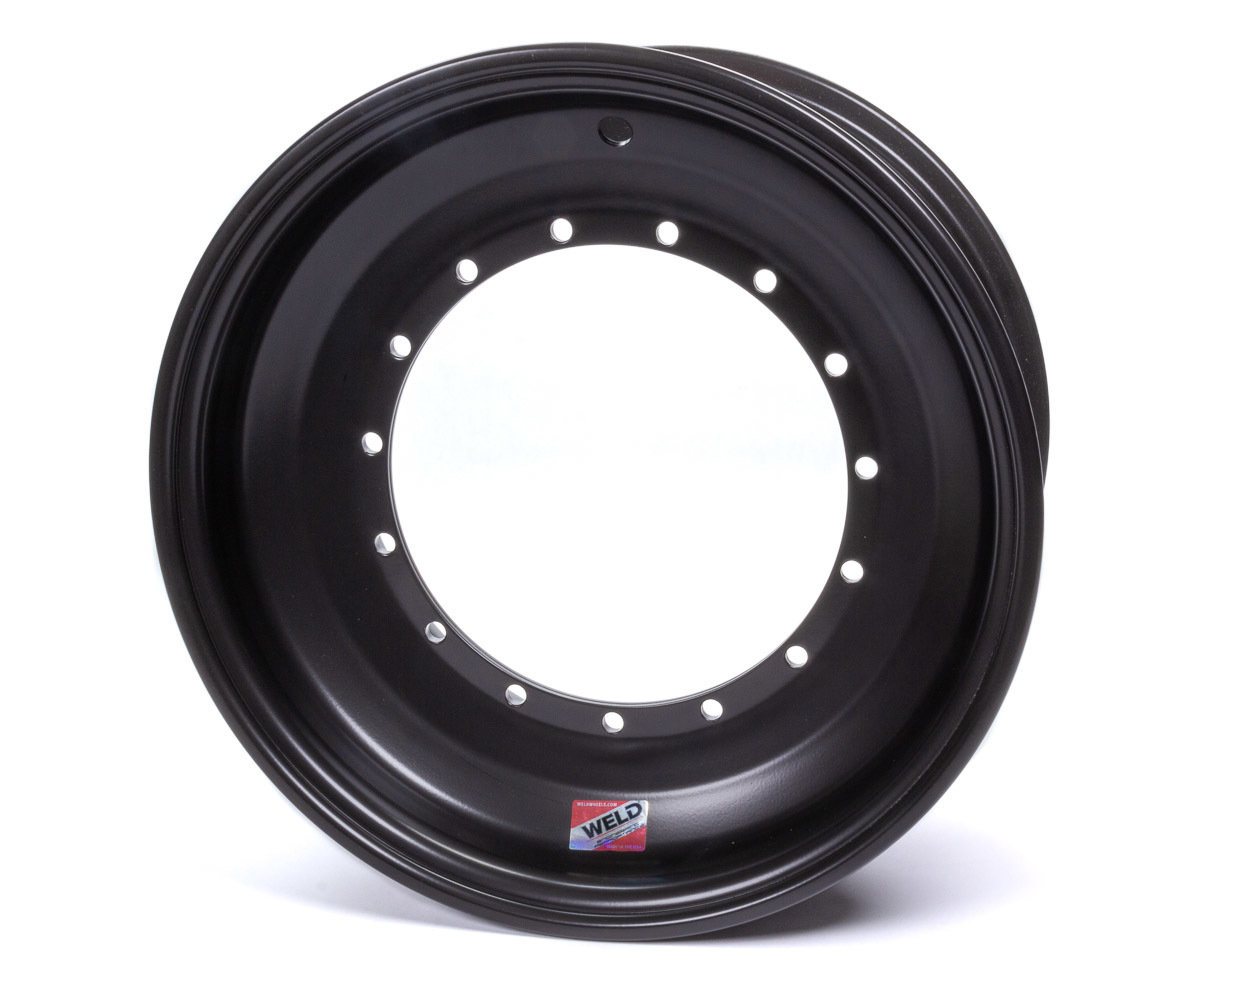 WELD RACING 15x8 5in BS Direct Mount No Cover All Black P/N - 860B-50815